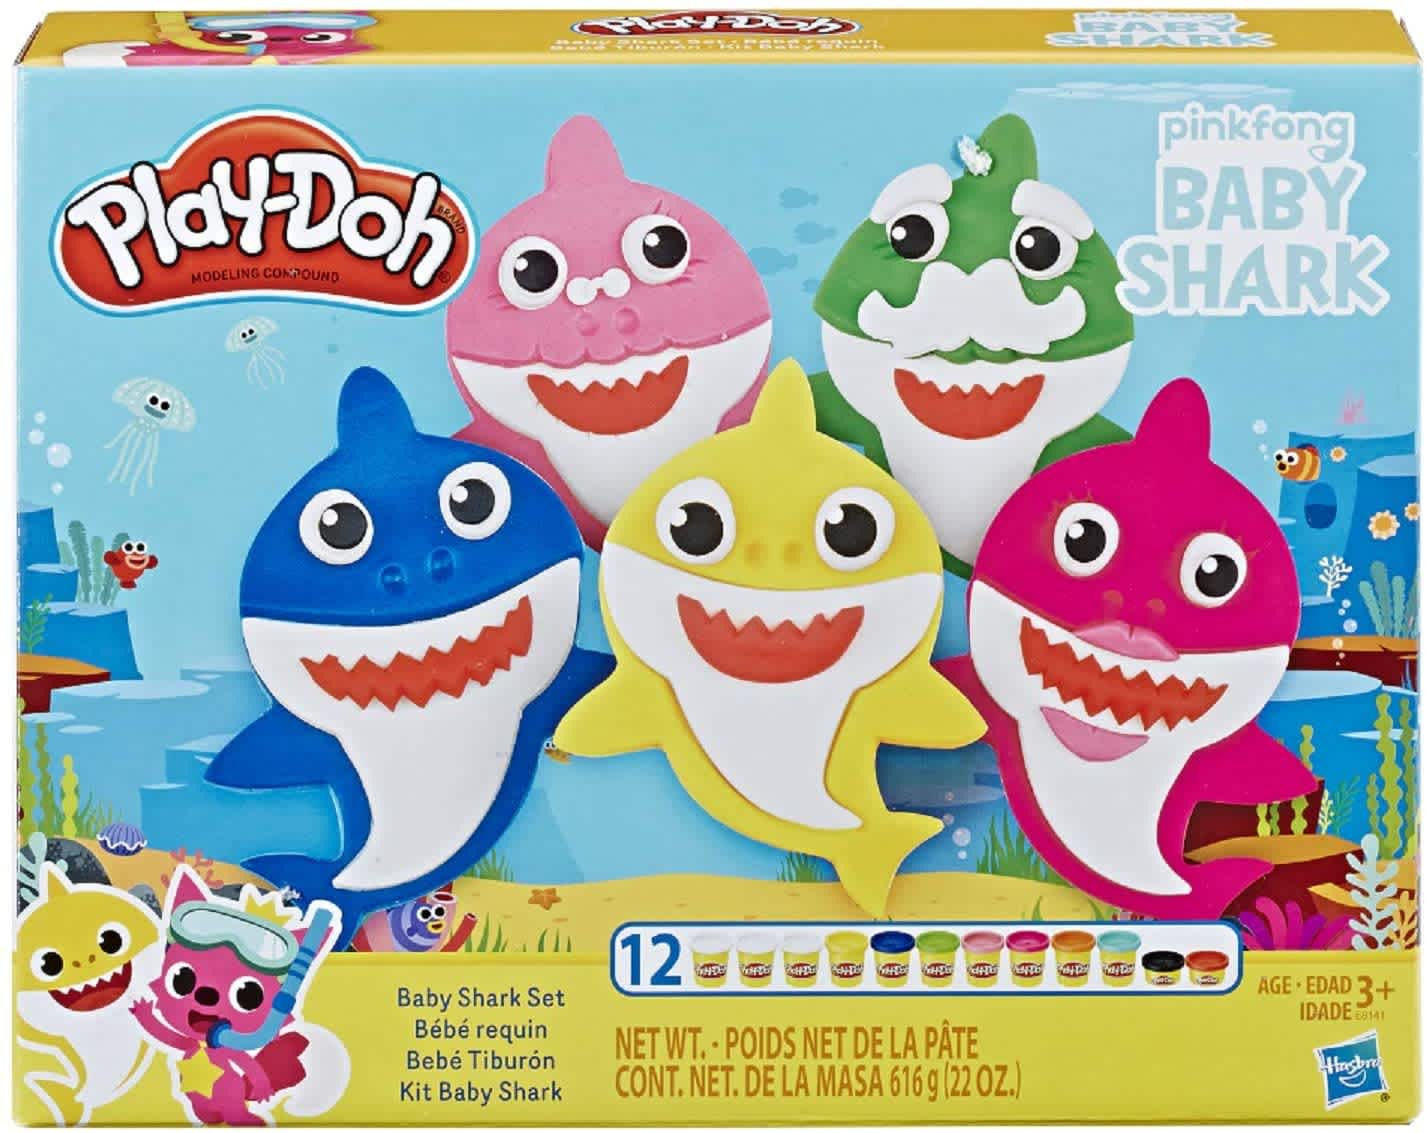 Play-Doh Pinkfong Baby Shark Set w/12 Play-Doh Cans